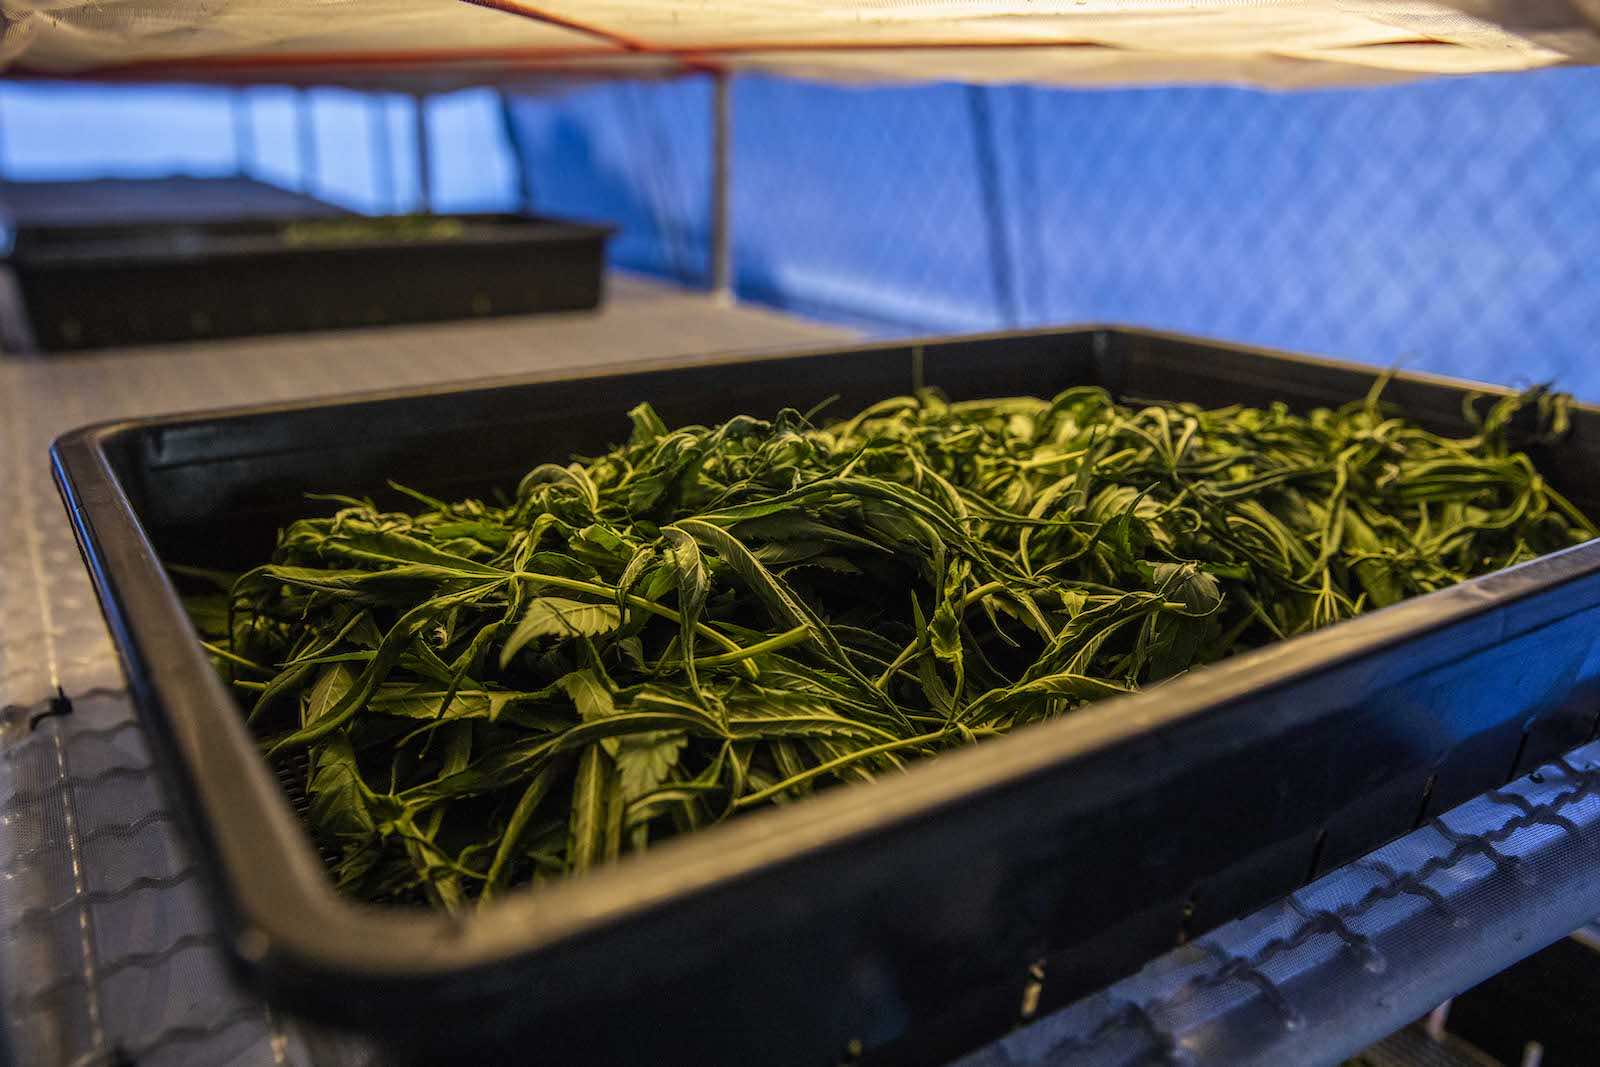 Cannabis leaves dry in a temperature controlled greenhouse in Thailand, which in 2018 became the first Southeast Asian country to legalise medical marijuana (Lauren DeCicca/Getty Images)